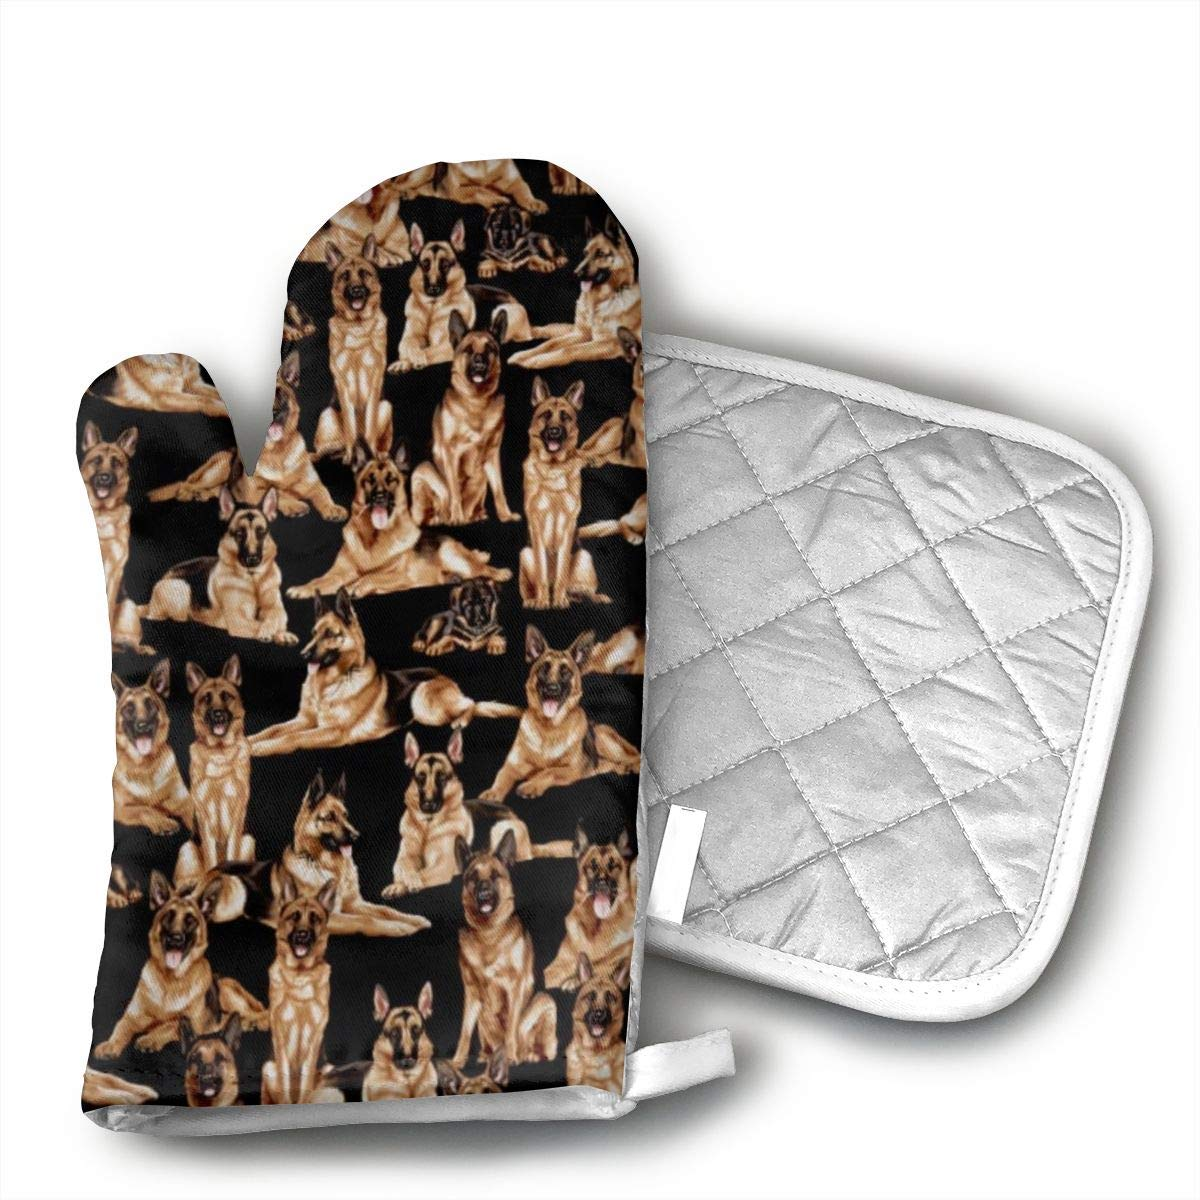 Ydsgjds Dog Show German Shepherds Oven Mitts and BBQ Gloves Pot Holders, Heat Resistant Mitts for Finger Hand Wrist Protection with Inner Lining